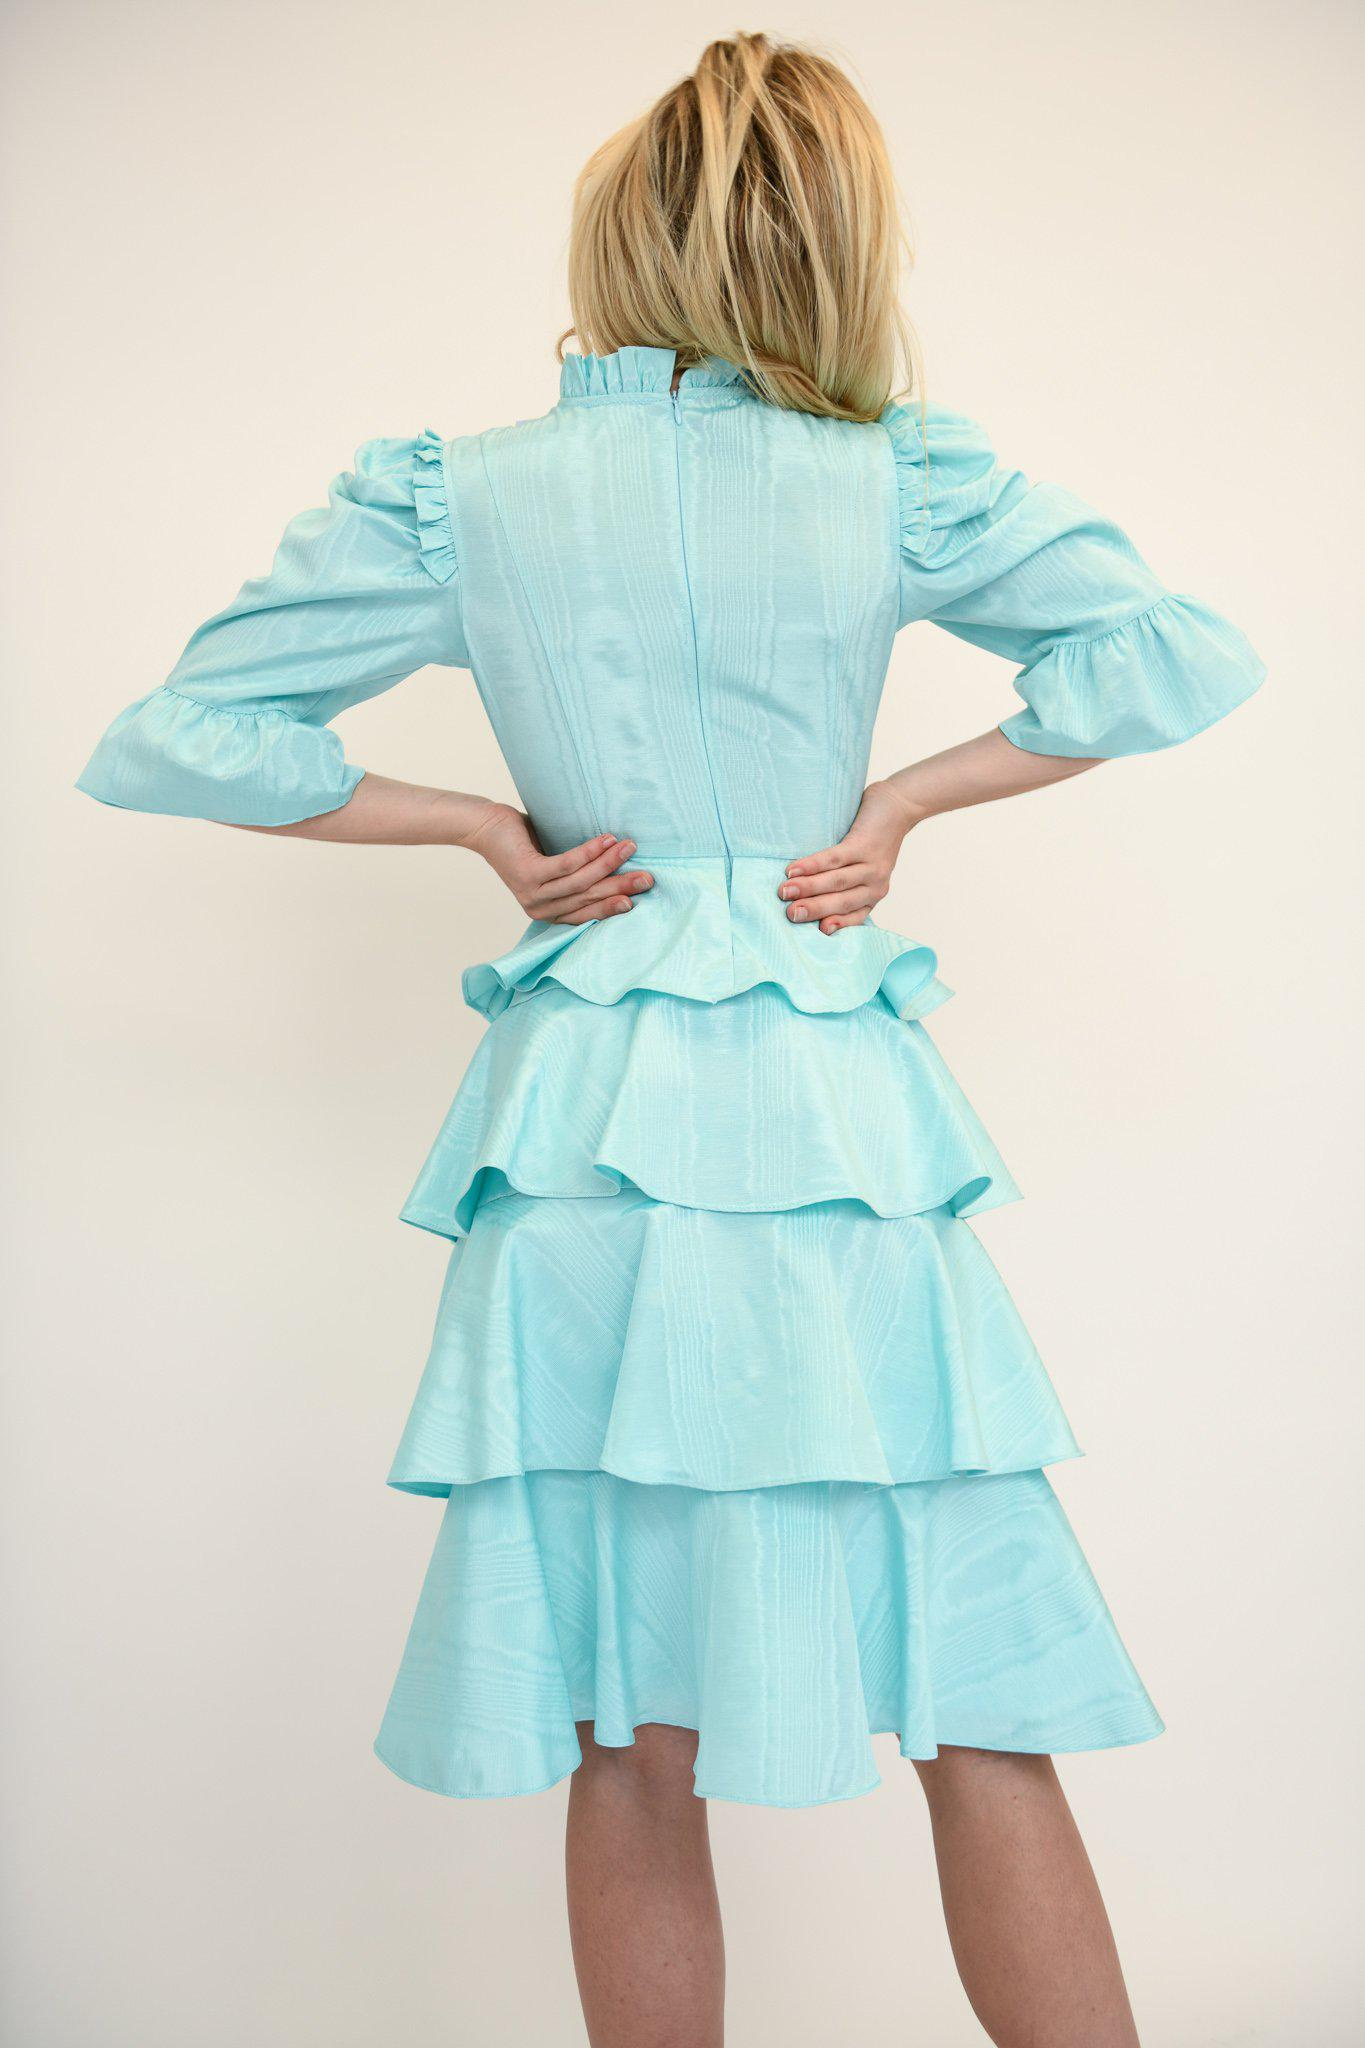 Spring Confection Dress in Aqua Moire 3